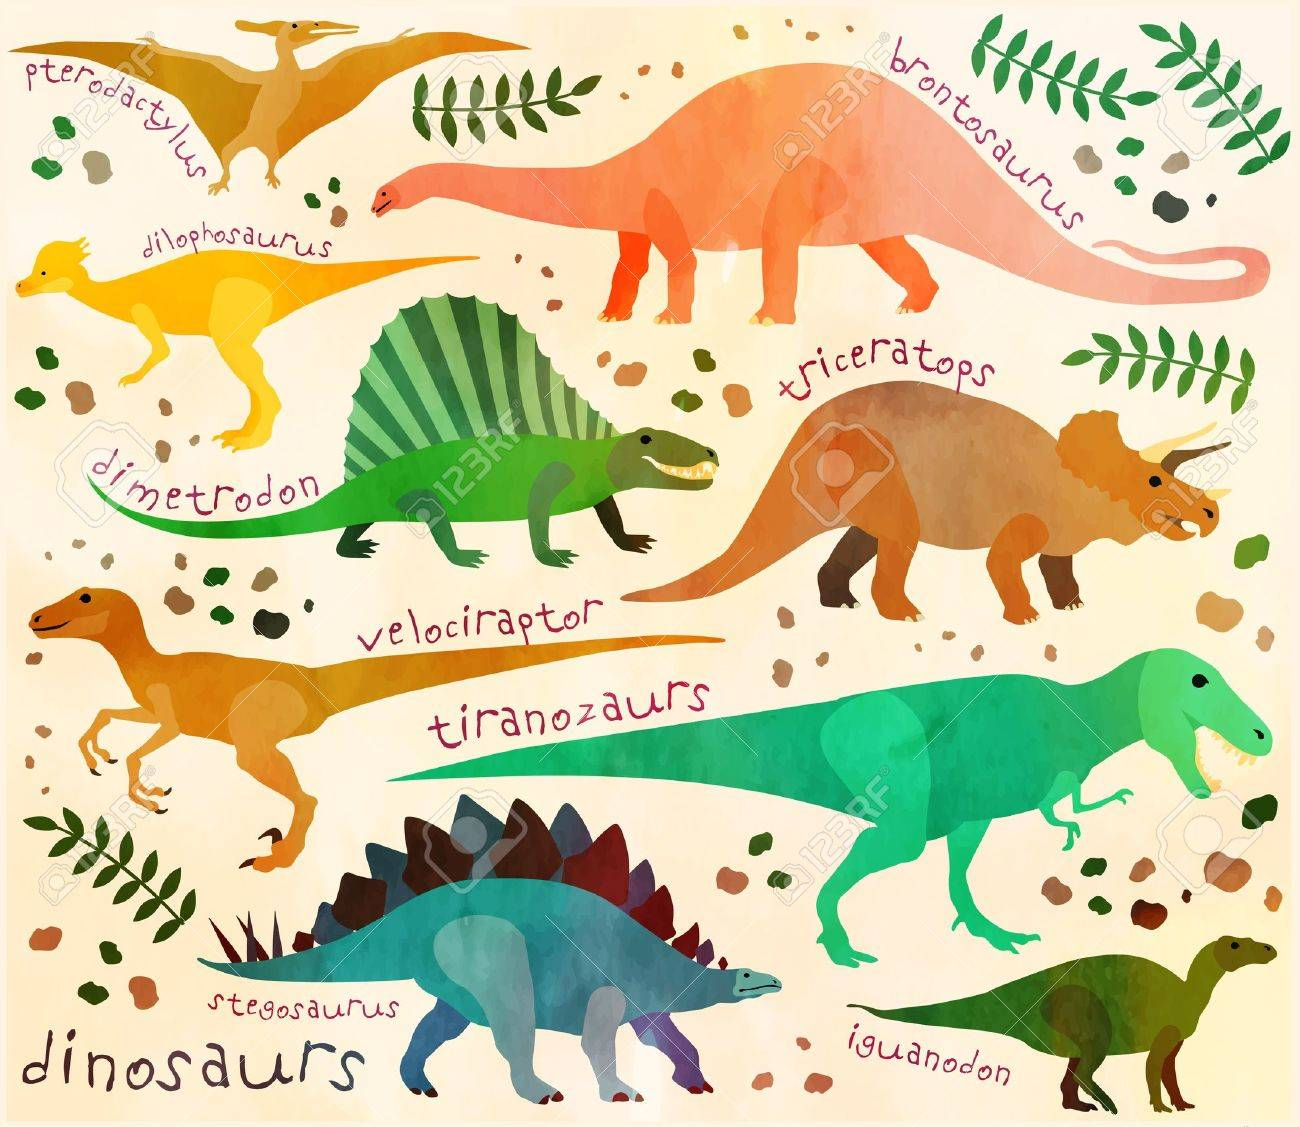 Pattern With Cartoon Dinosaurs For Kids Vector Illustration Royalty Free Cliparts Vectors And Stock Illustration Image 40923804 They first appeared during the triassic period, between 243 and 233.23 million years ago. pattern with cartoon dinosaurs for kids vector illustration